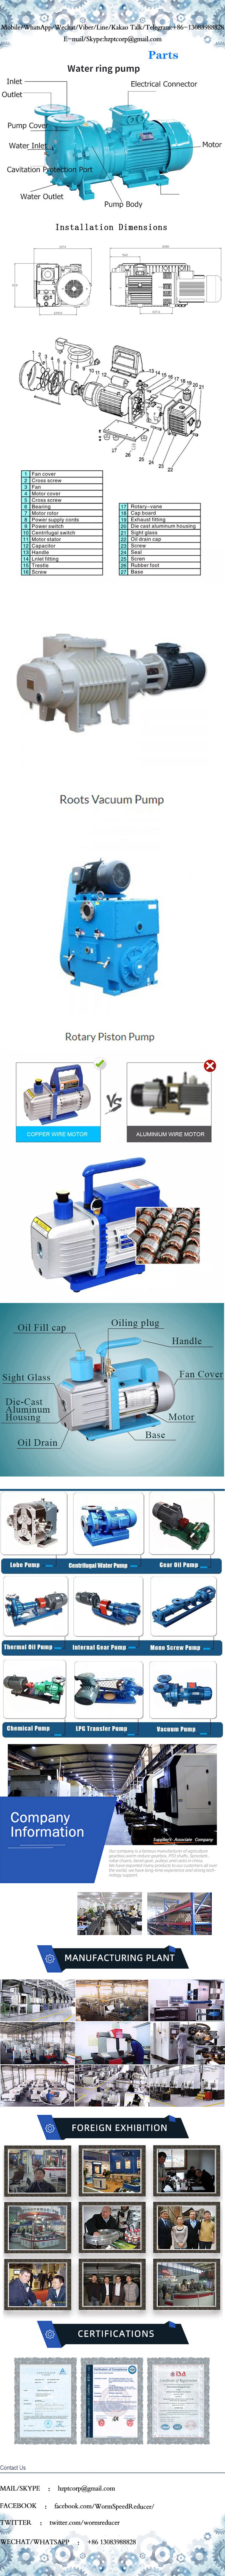 Elt-80 High Efficiency Low Engergy Roots Vacuum Pump